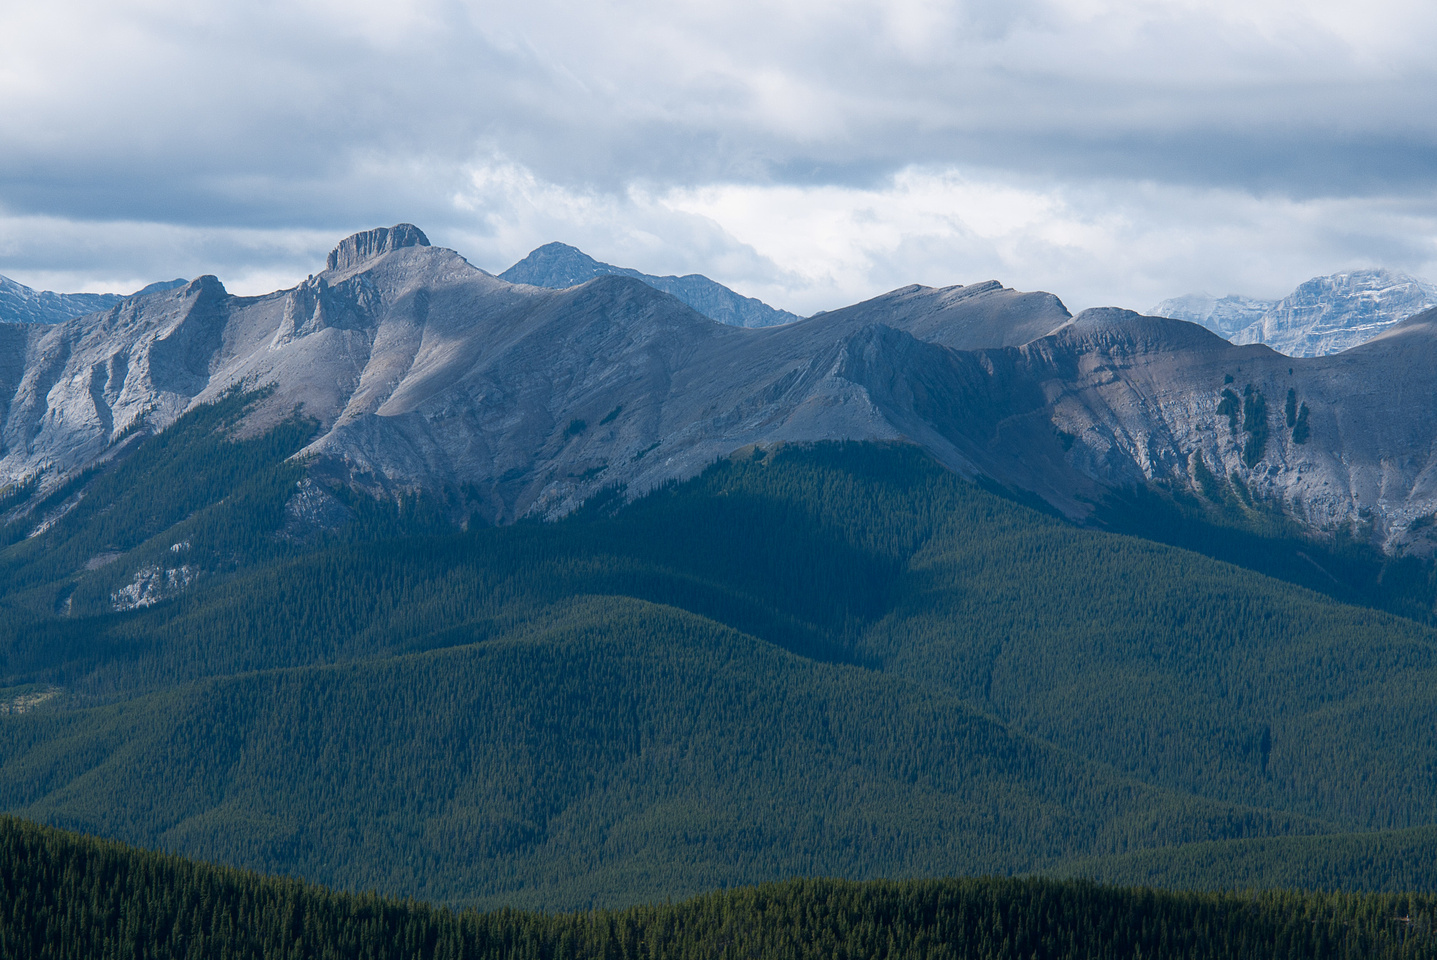 Tiara Peak at left.